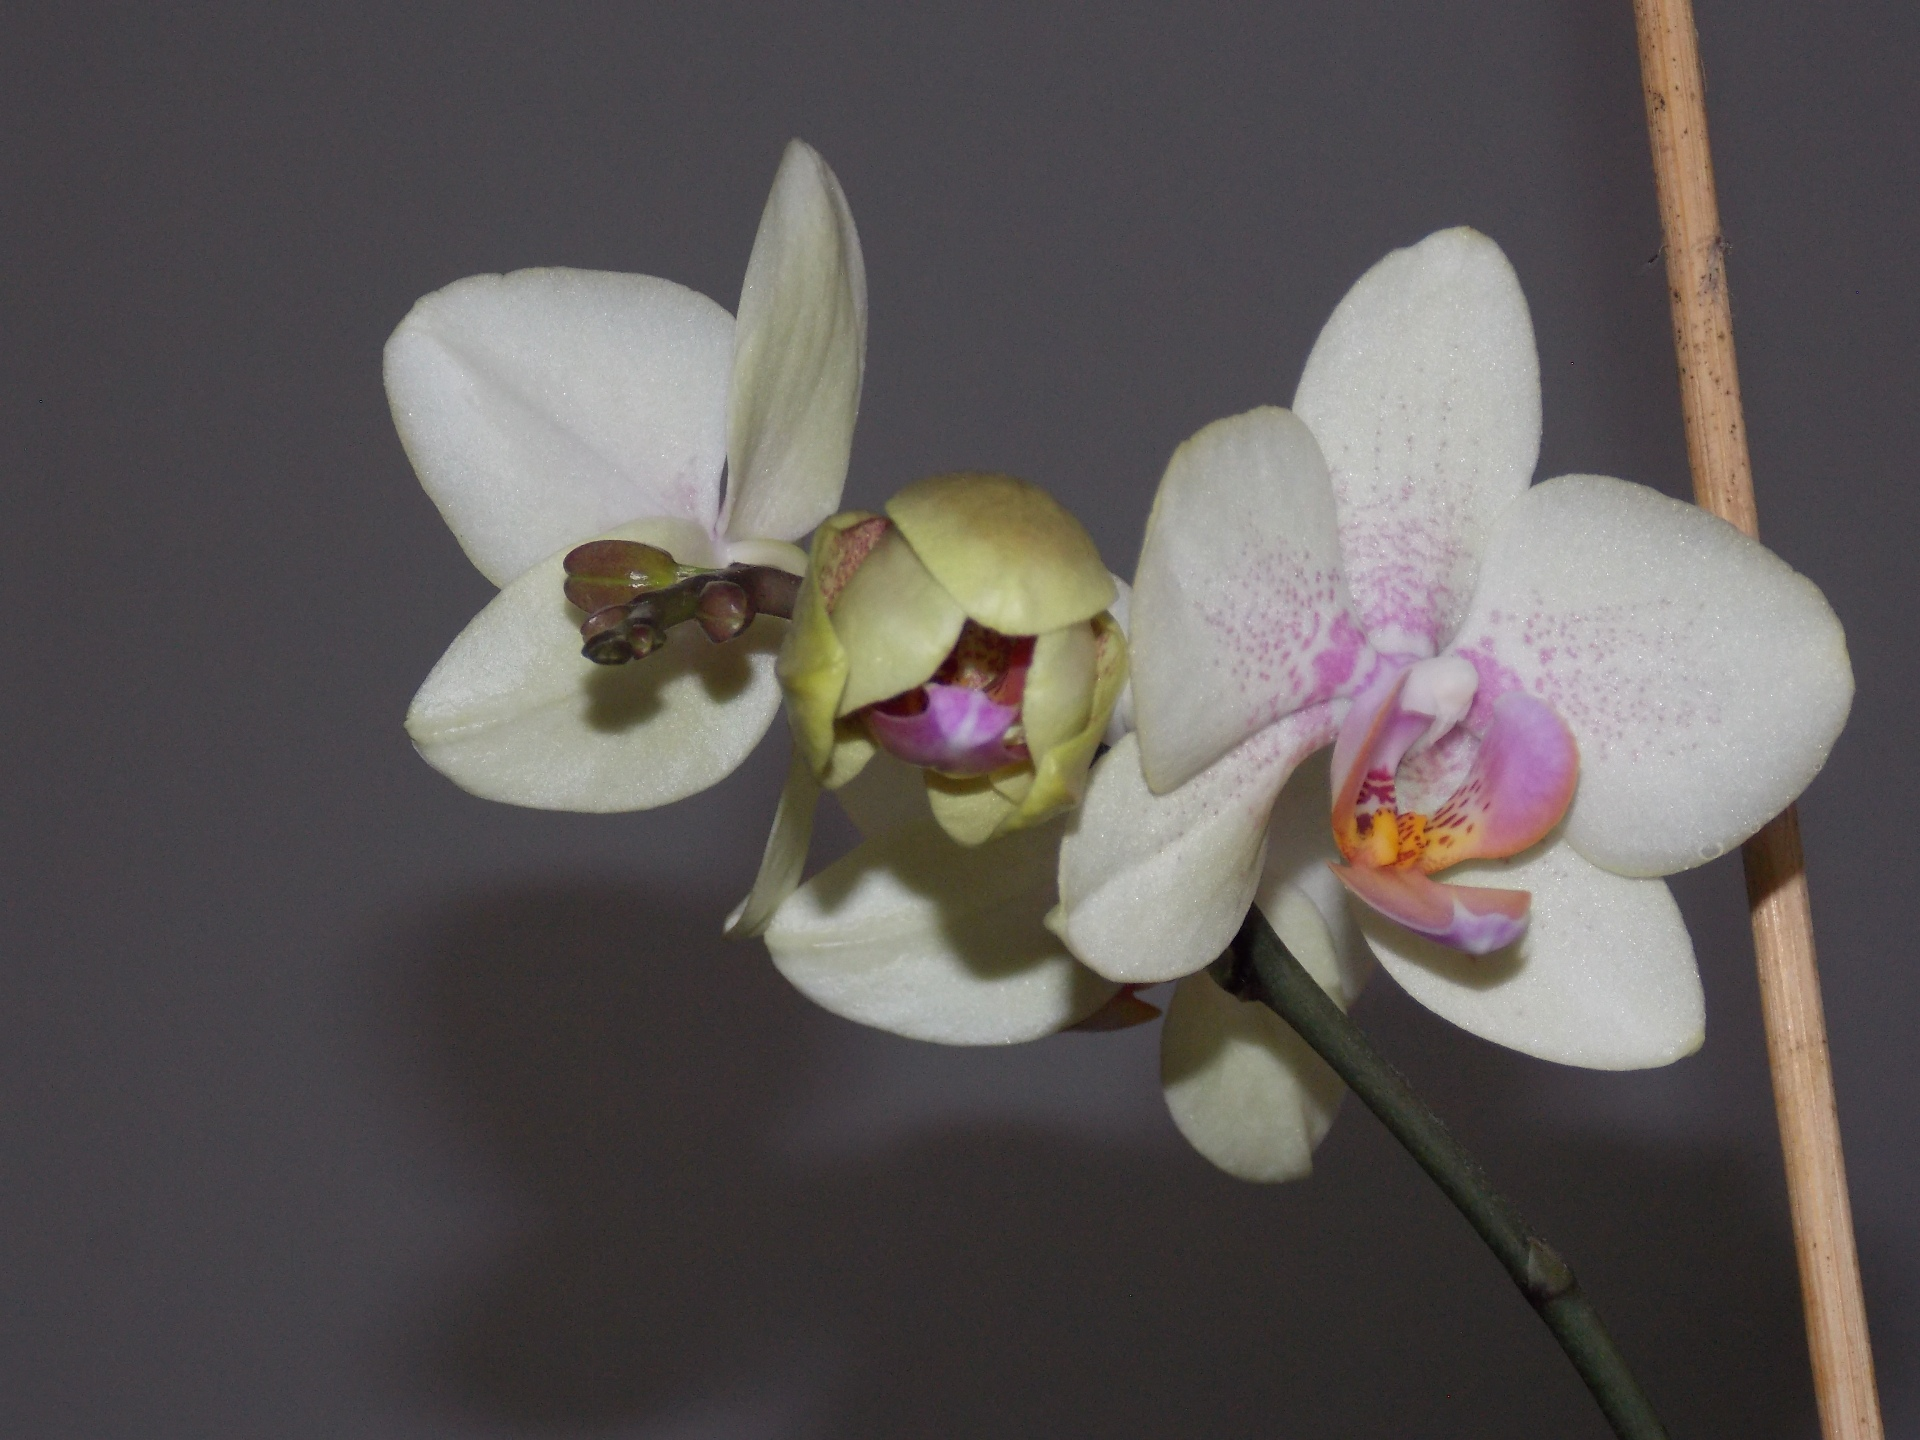 Orchidee, fotografiert am 11.02.2017